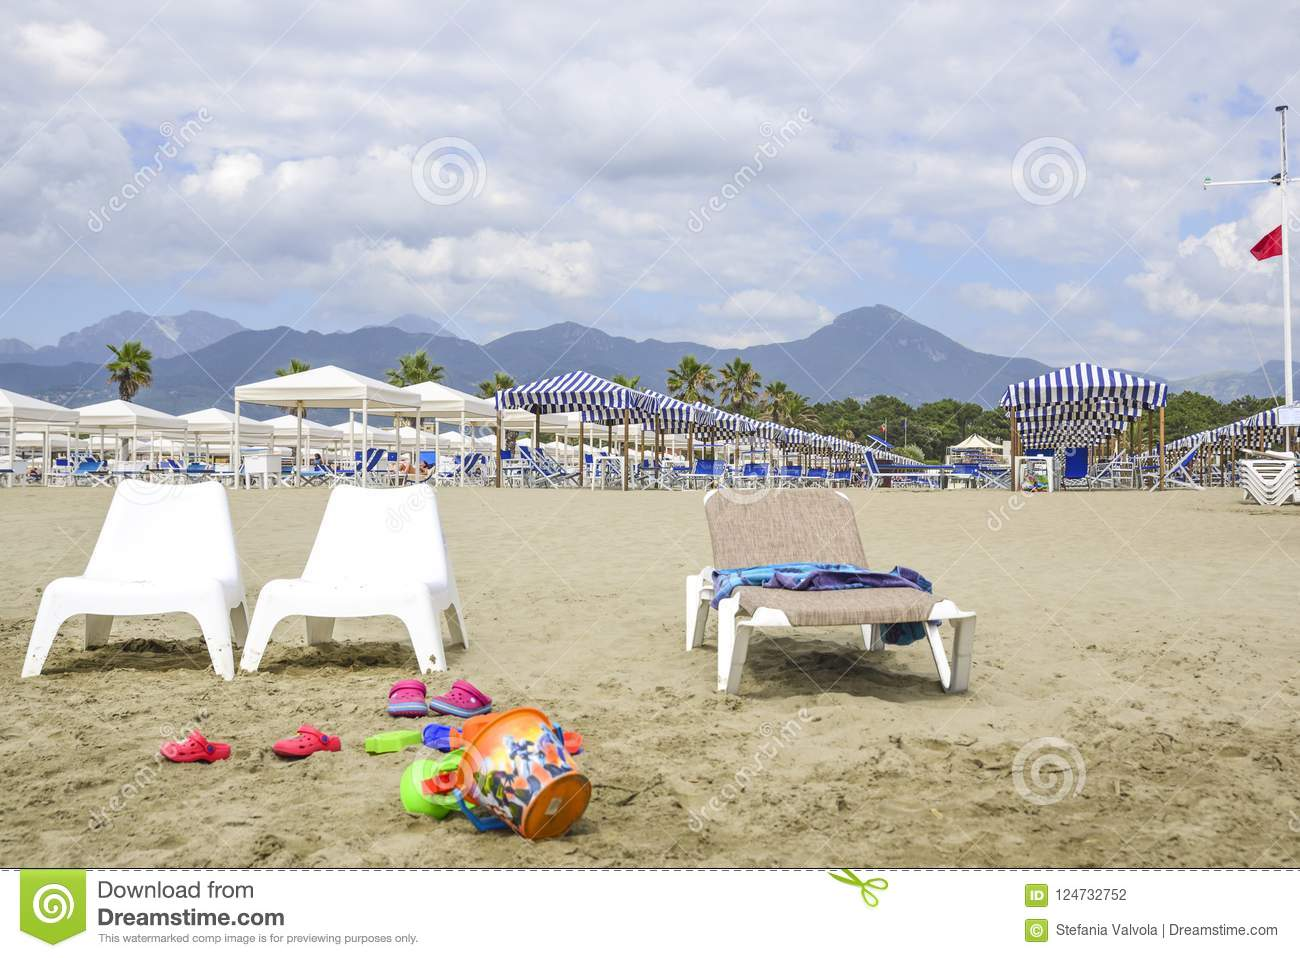 Beach with games for children in the foreground. In the background the Apuan Alps, Tuscany, Italy